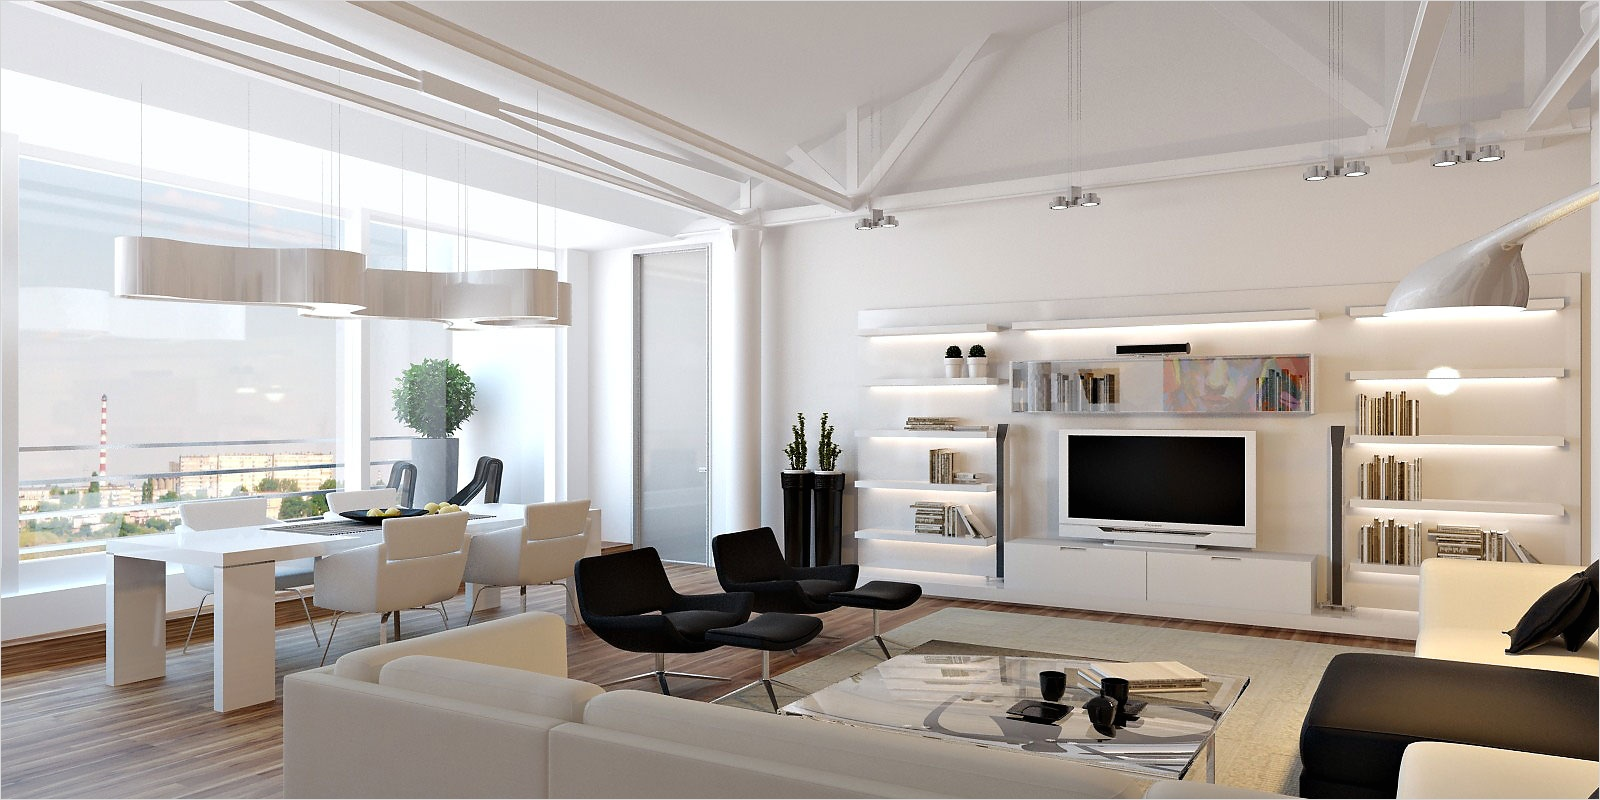 42 Stunning Modern Apartment Interior Design Trends 64 the Pros and Cons Living In A Loft 5